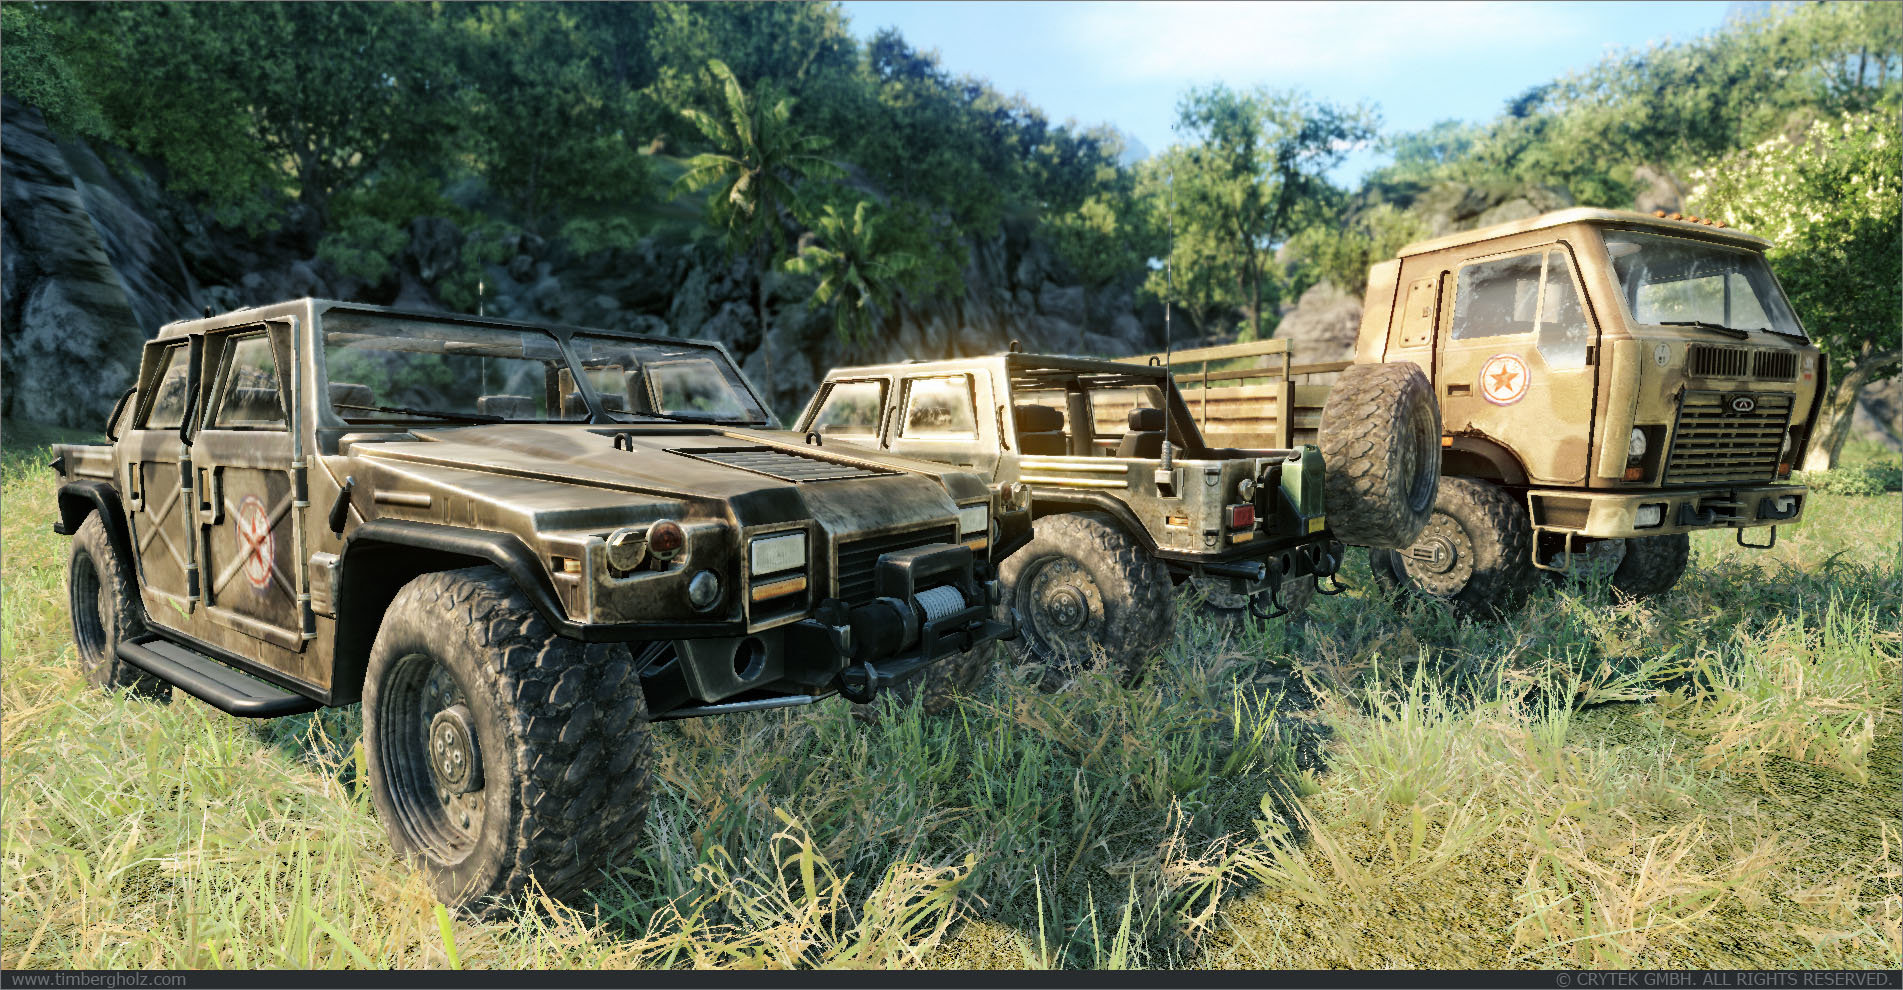 Tim bergholz c1c vehicles 2 full